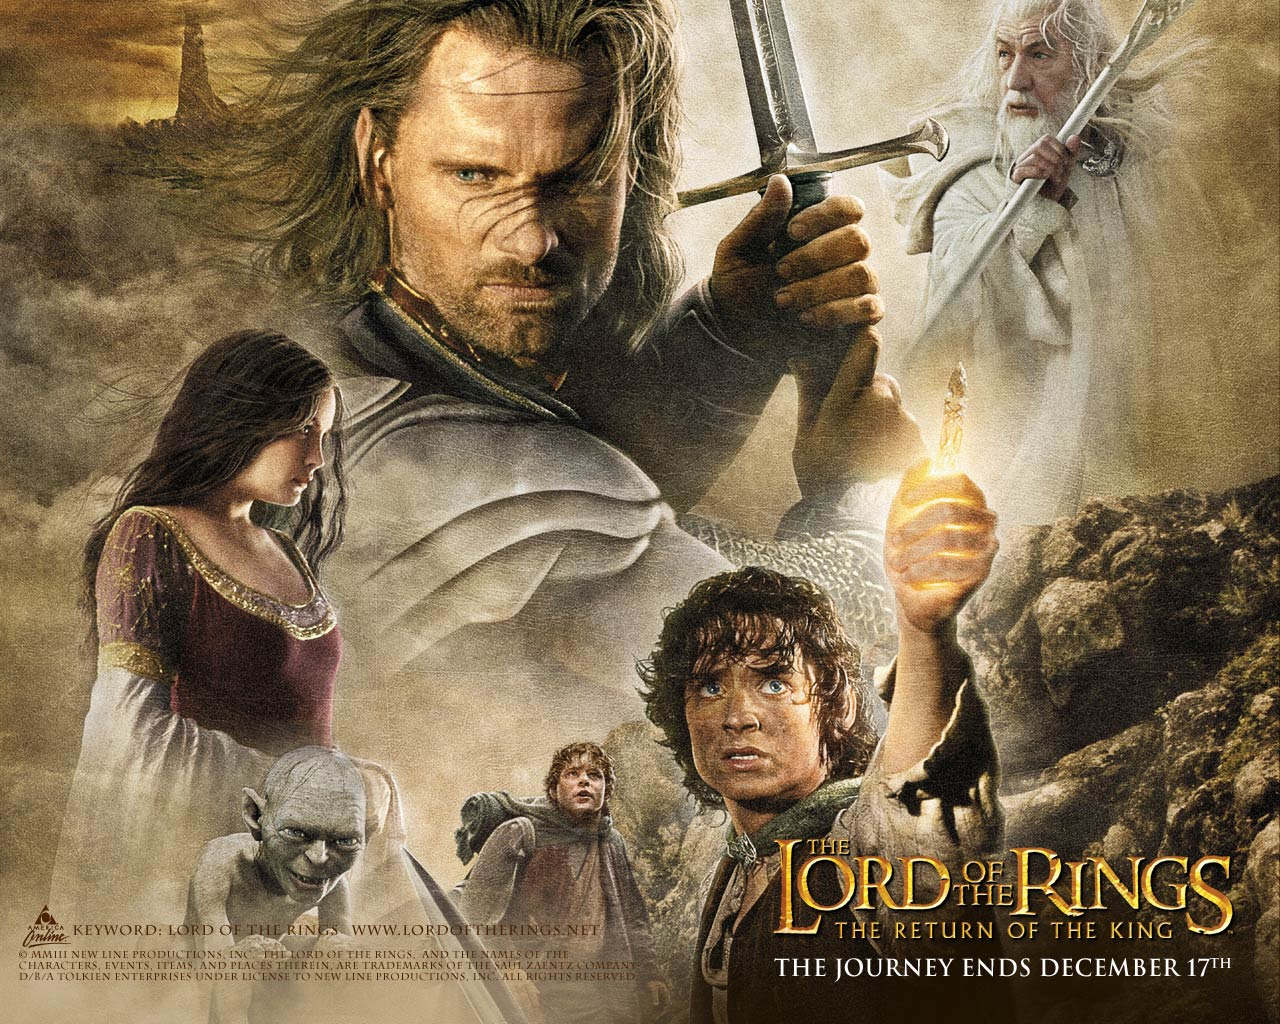 Afbeeldingen The Lord of the Rings The Lord of the Rings: The Return of the King Films film